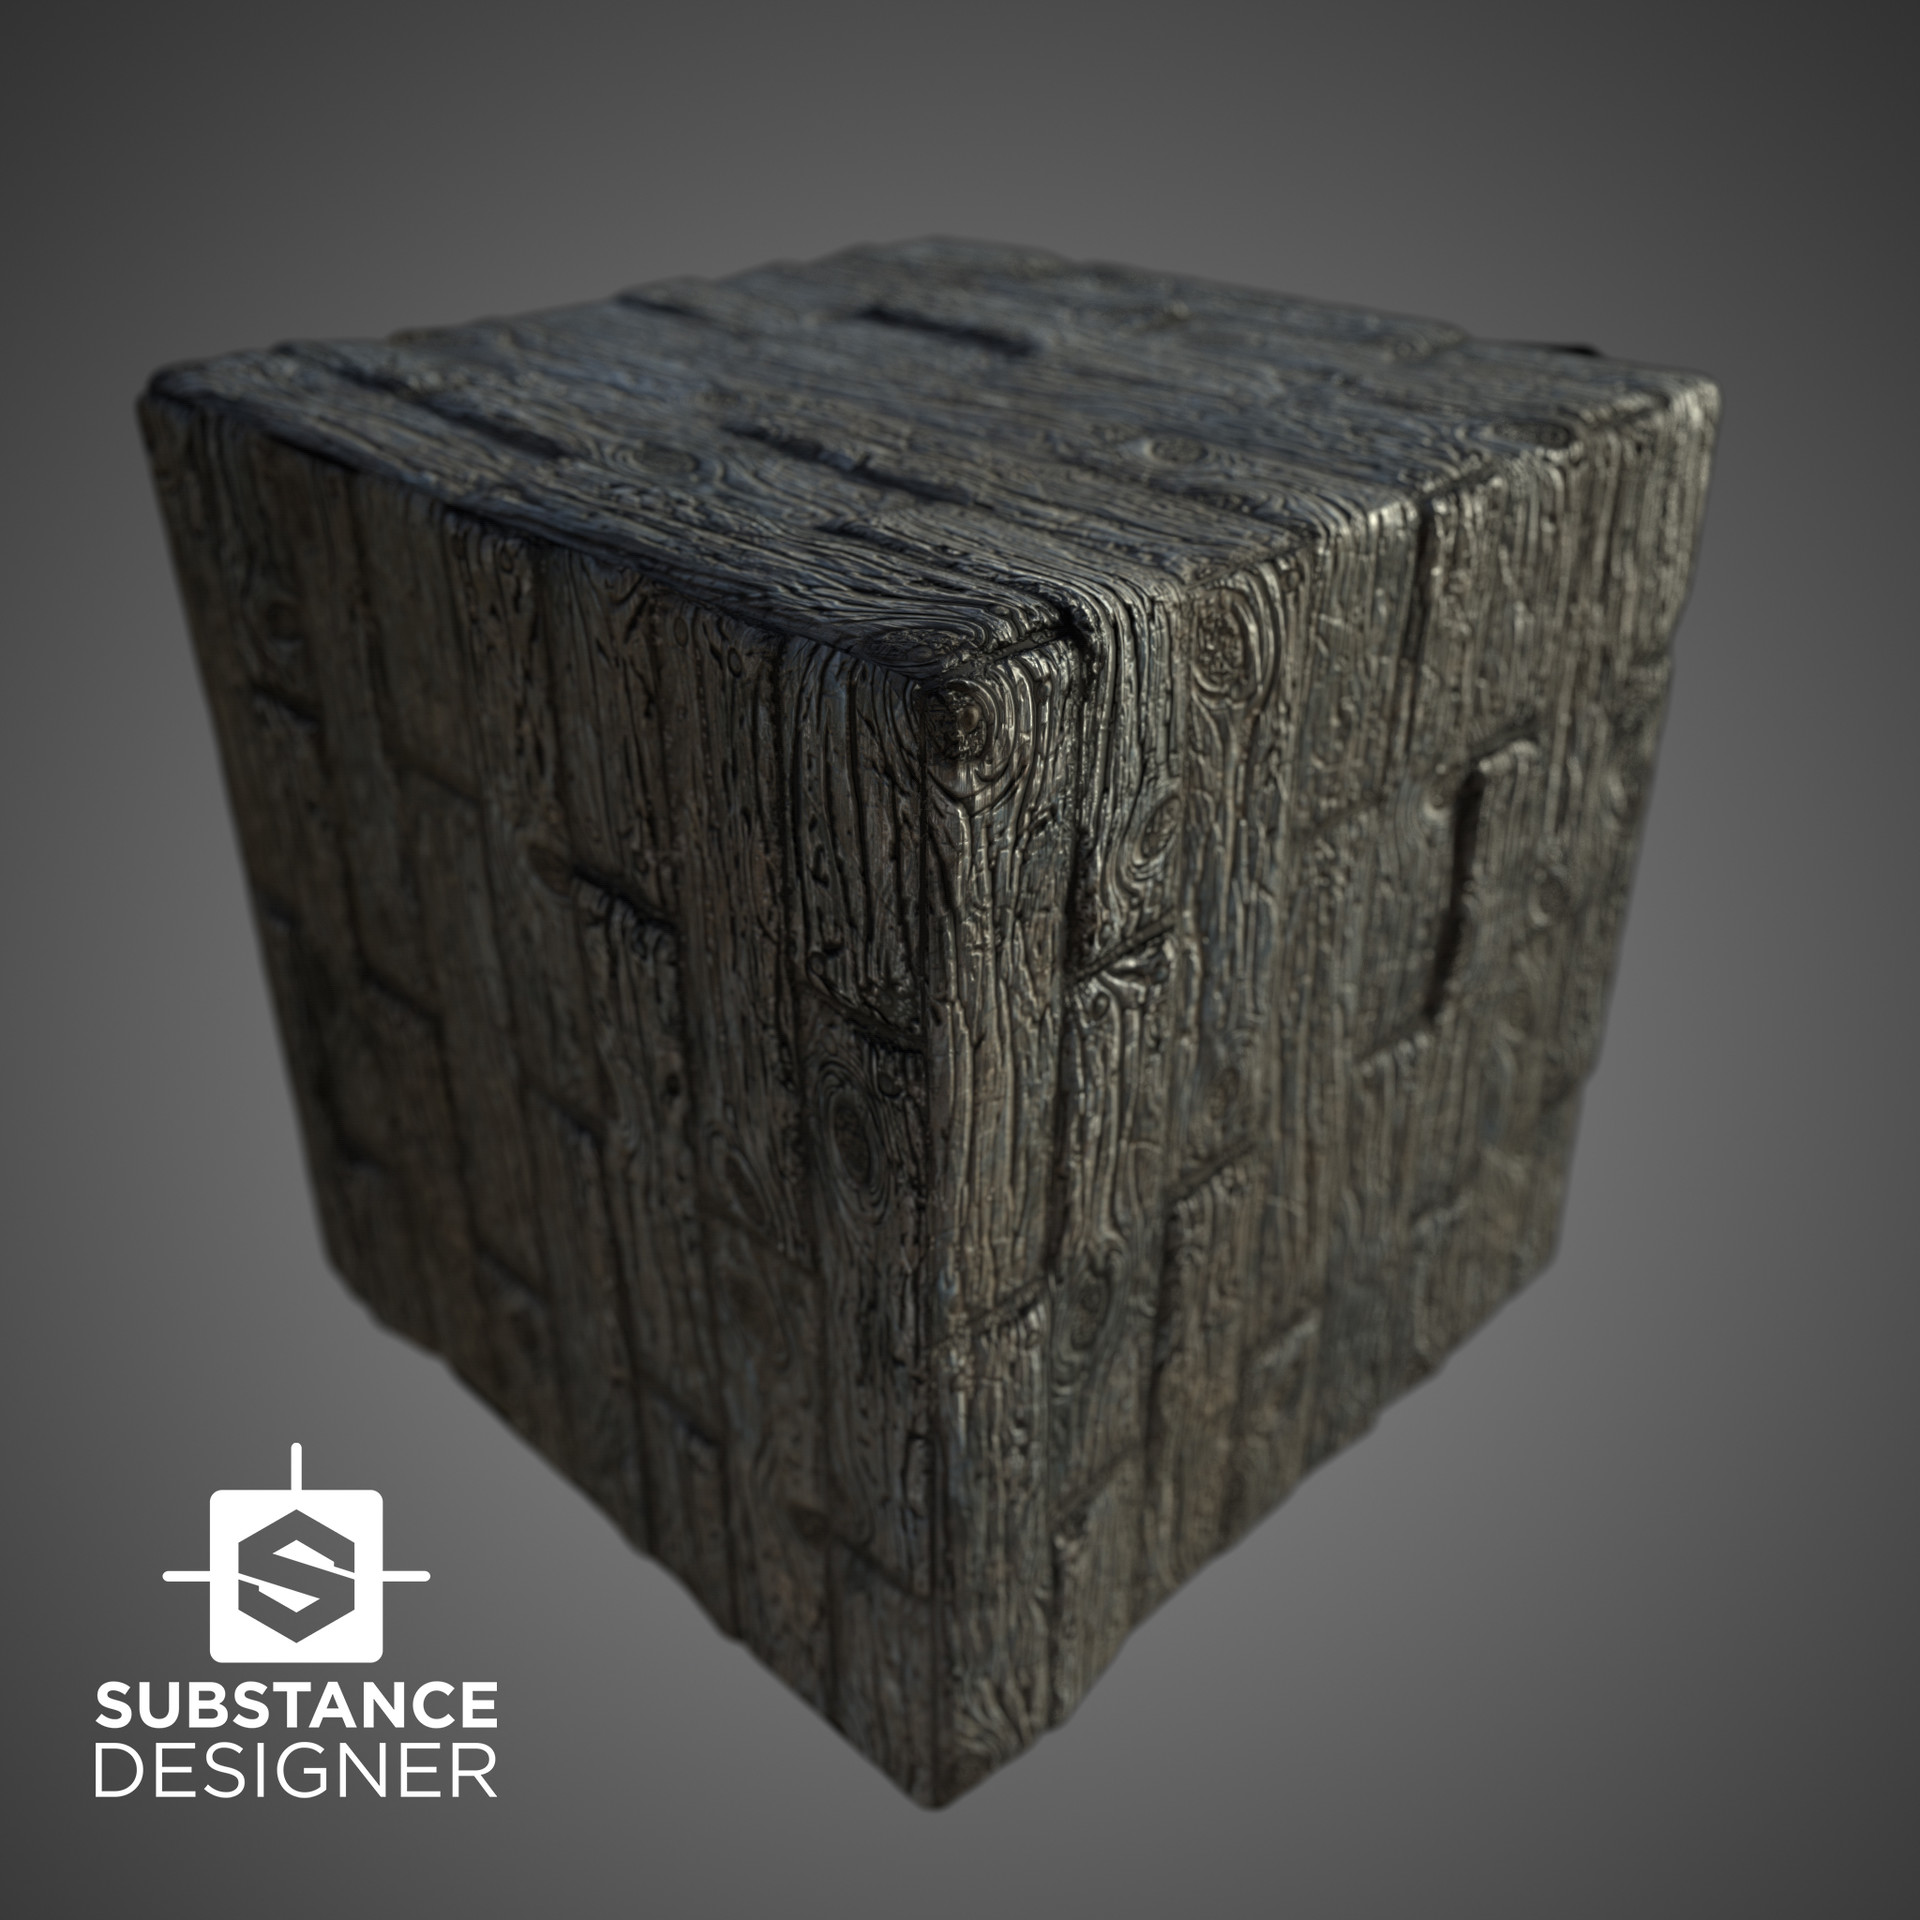 ArtStation - Wood planks aged in Substance Designer / UE4 and Unity